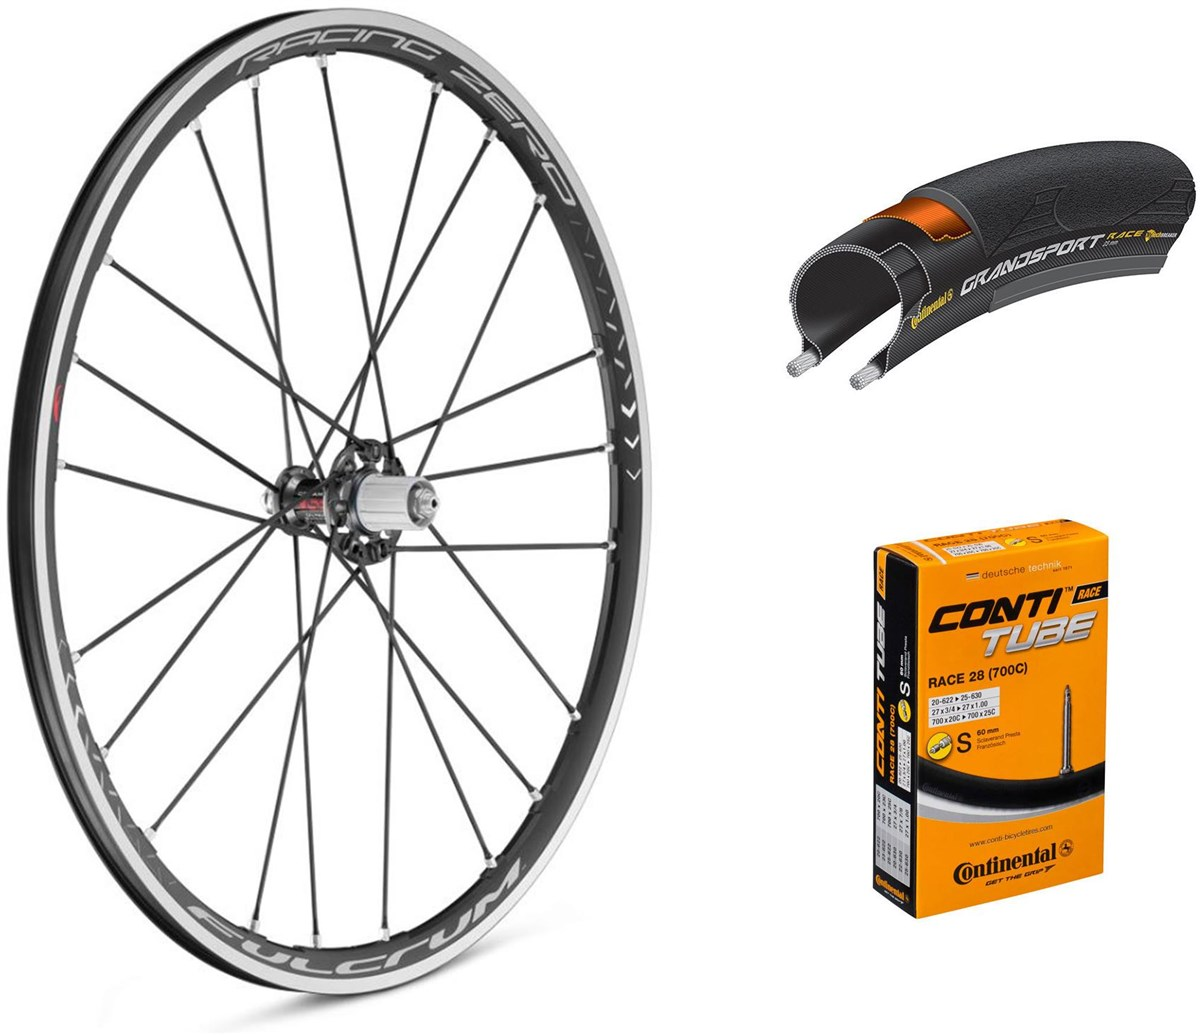 Fulcrum Racing Zero C17 700c Wheelset with Tyres and Tubes | Hjulsæt